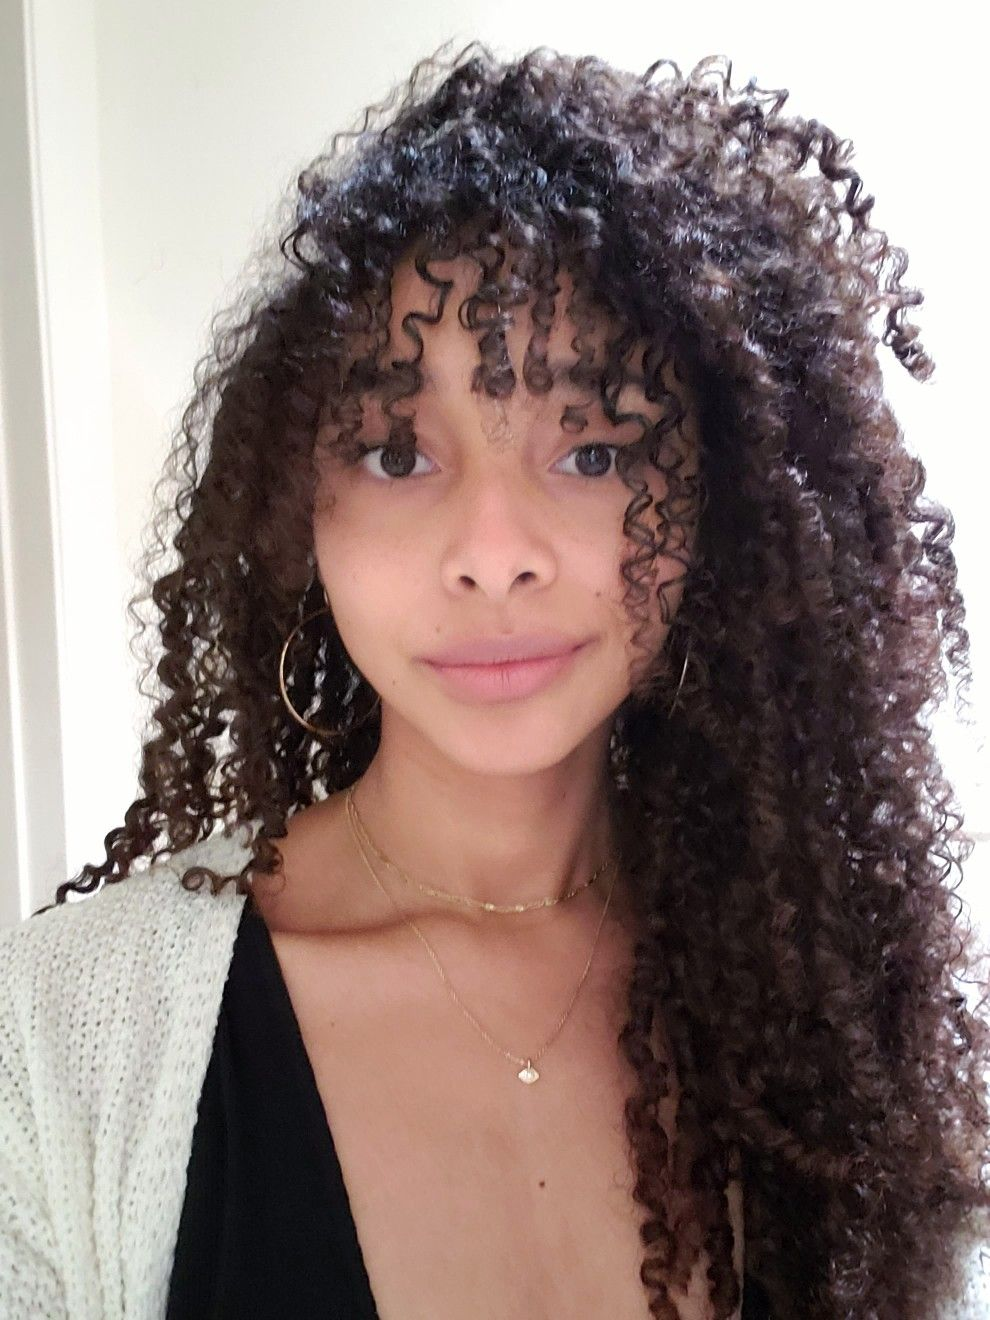 14+ Curly hair styles with bangs ideas in 2021